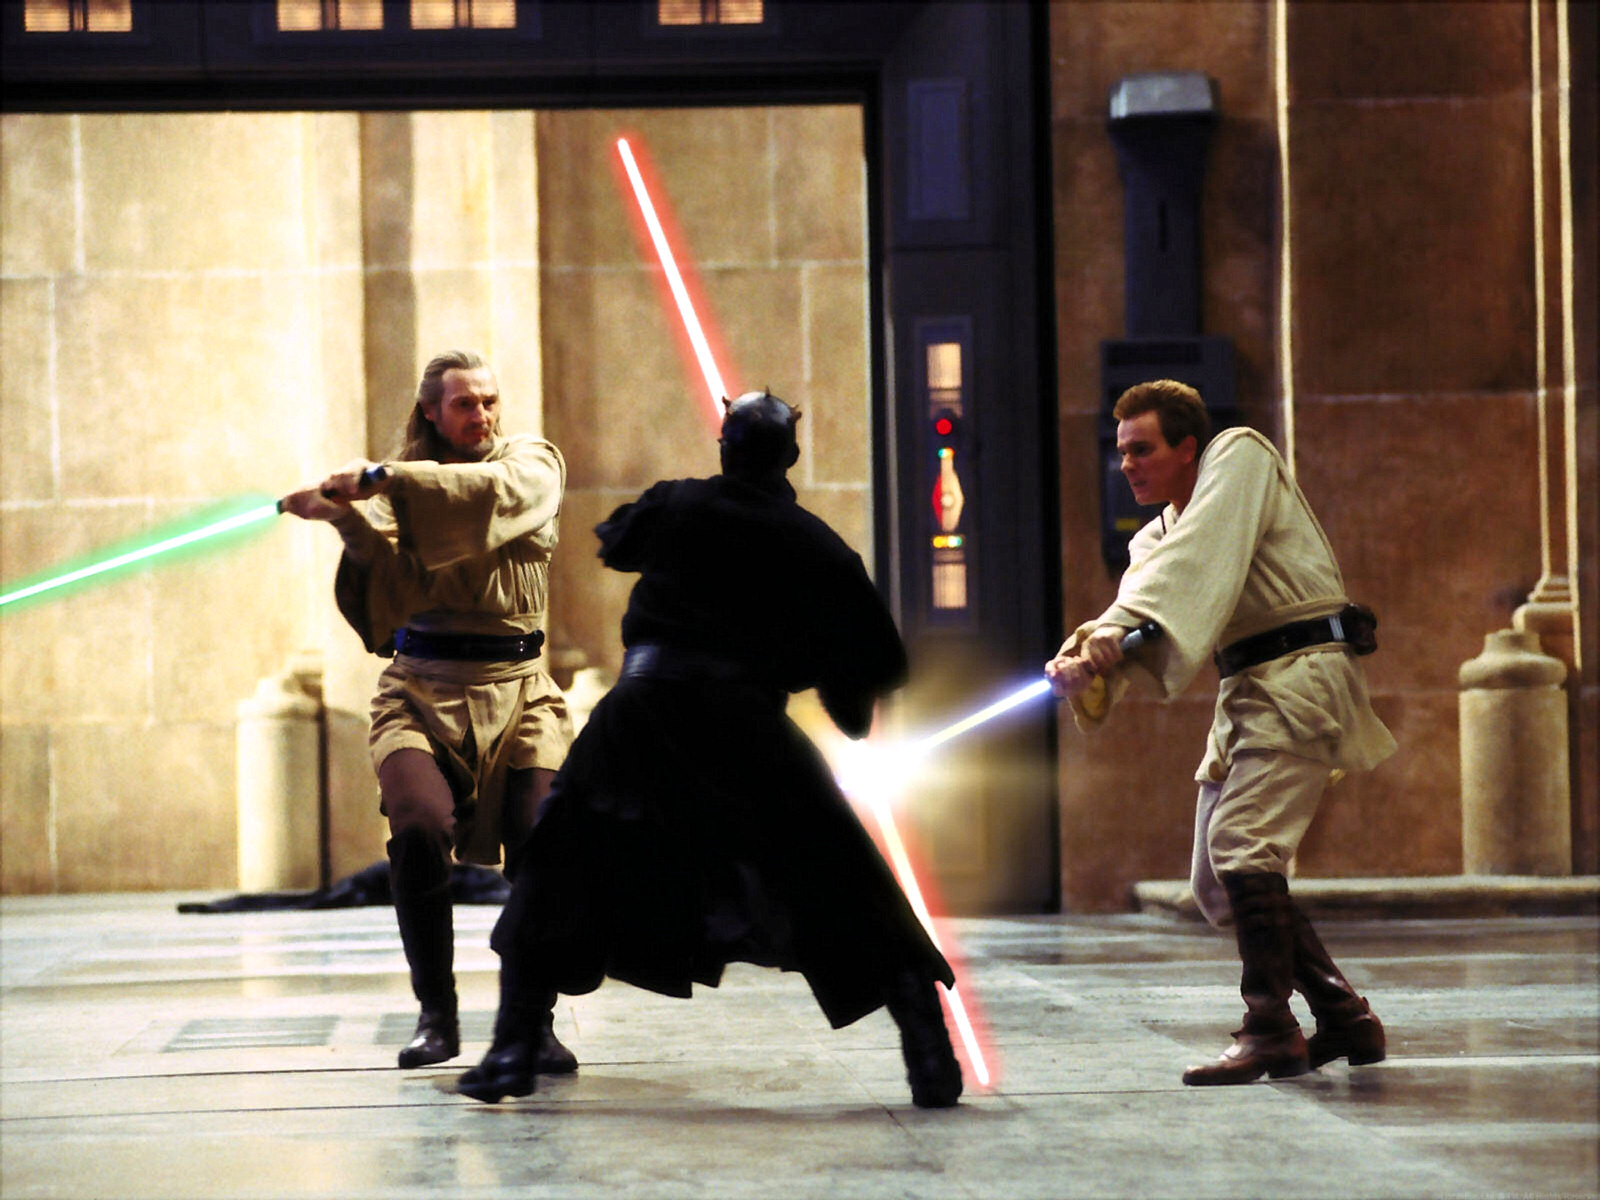 Review star wars episode i the phantom menace